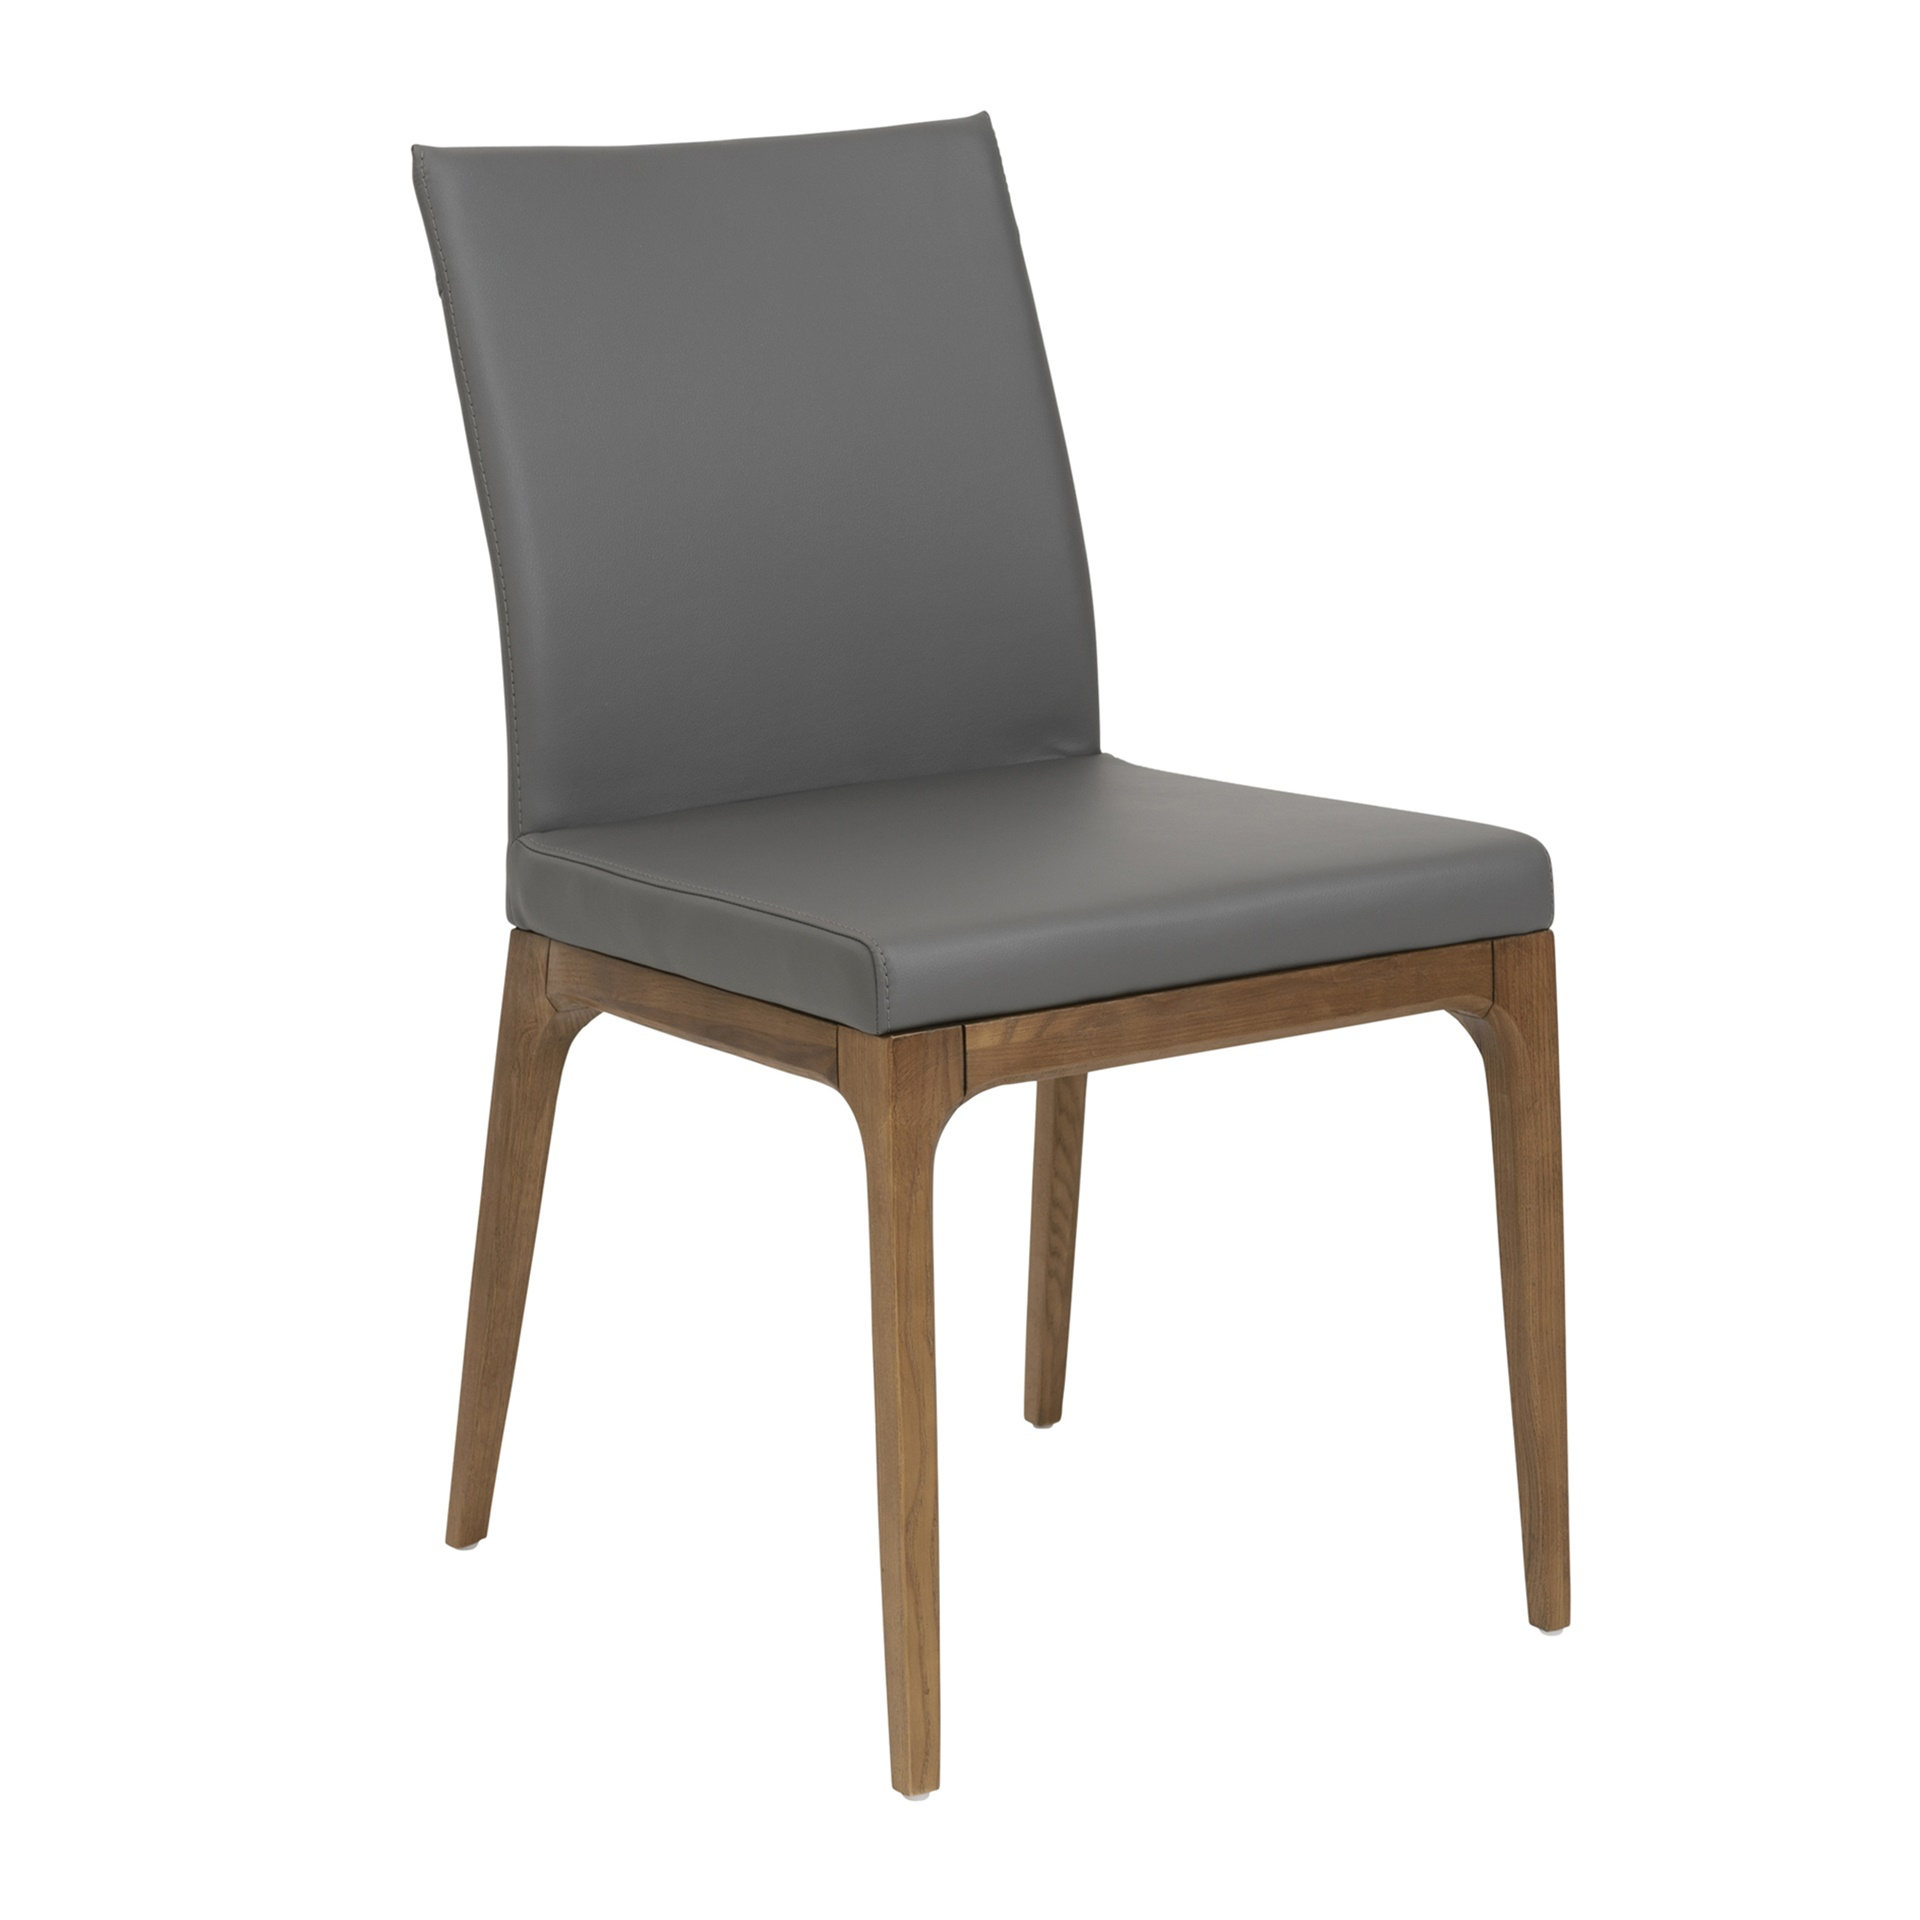 Sully low back dining chair